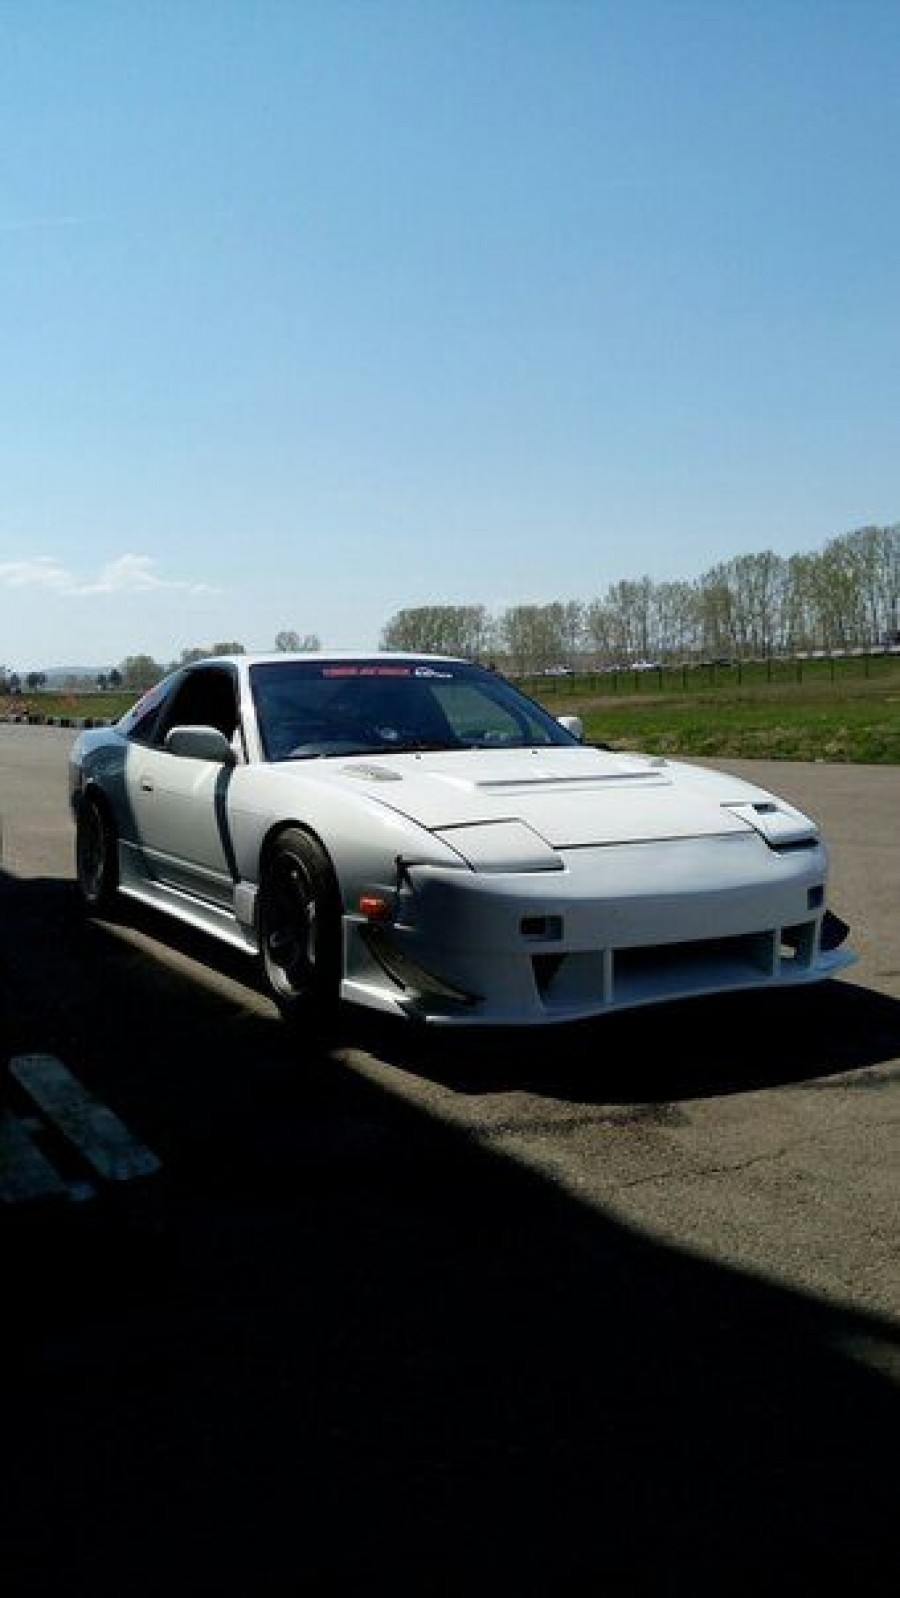 Nissan 180SX/200SX/240SX wheels Rays Volk Racing TE37 17″ 9J 9.5J  am circuit spec